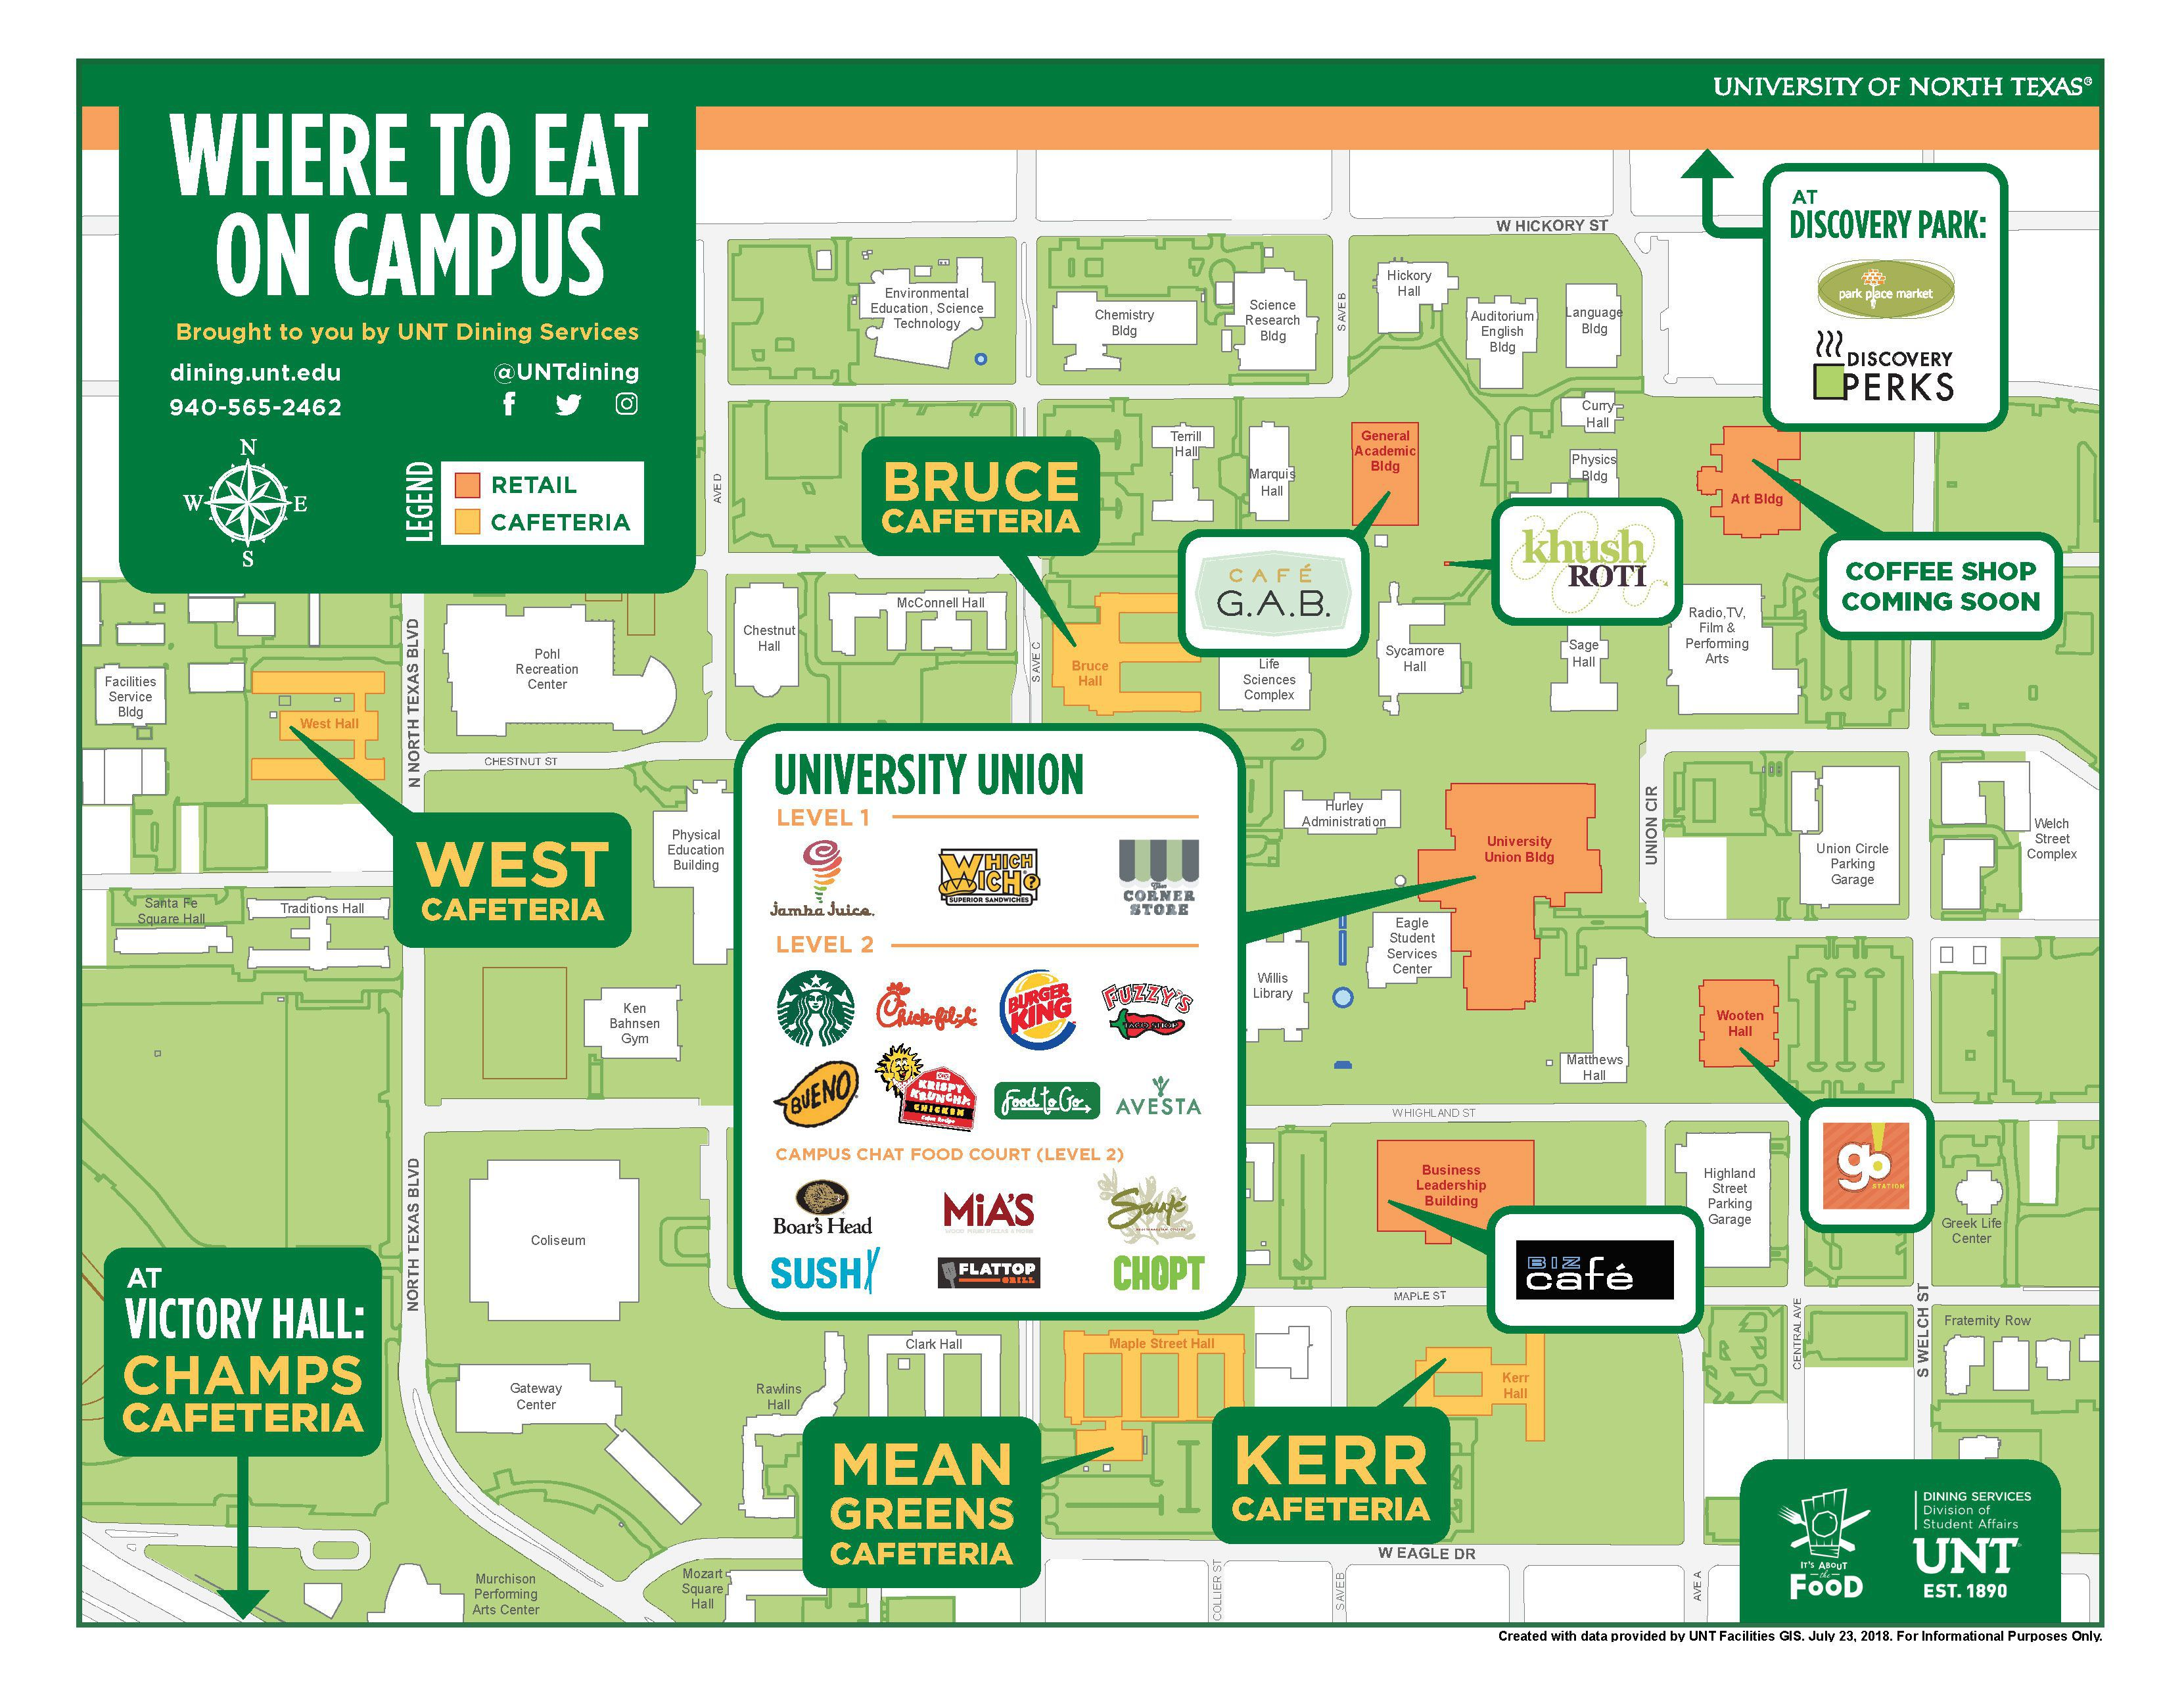 Map Of Unt UNT Cafeteria Location Maps   University of North Texas Dining Map Of Unt